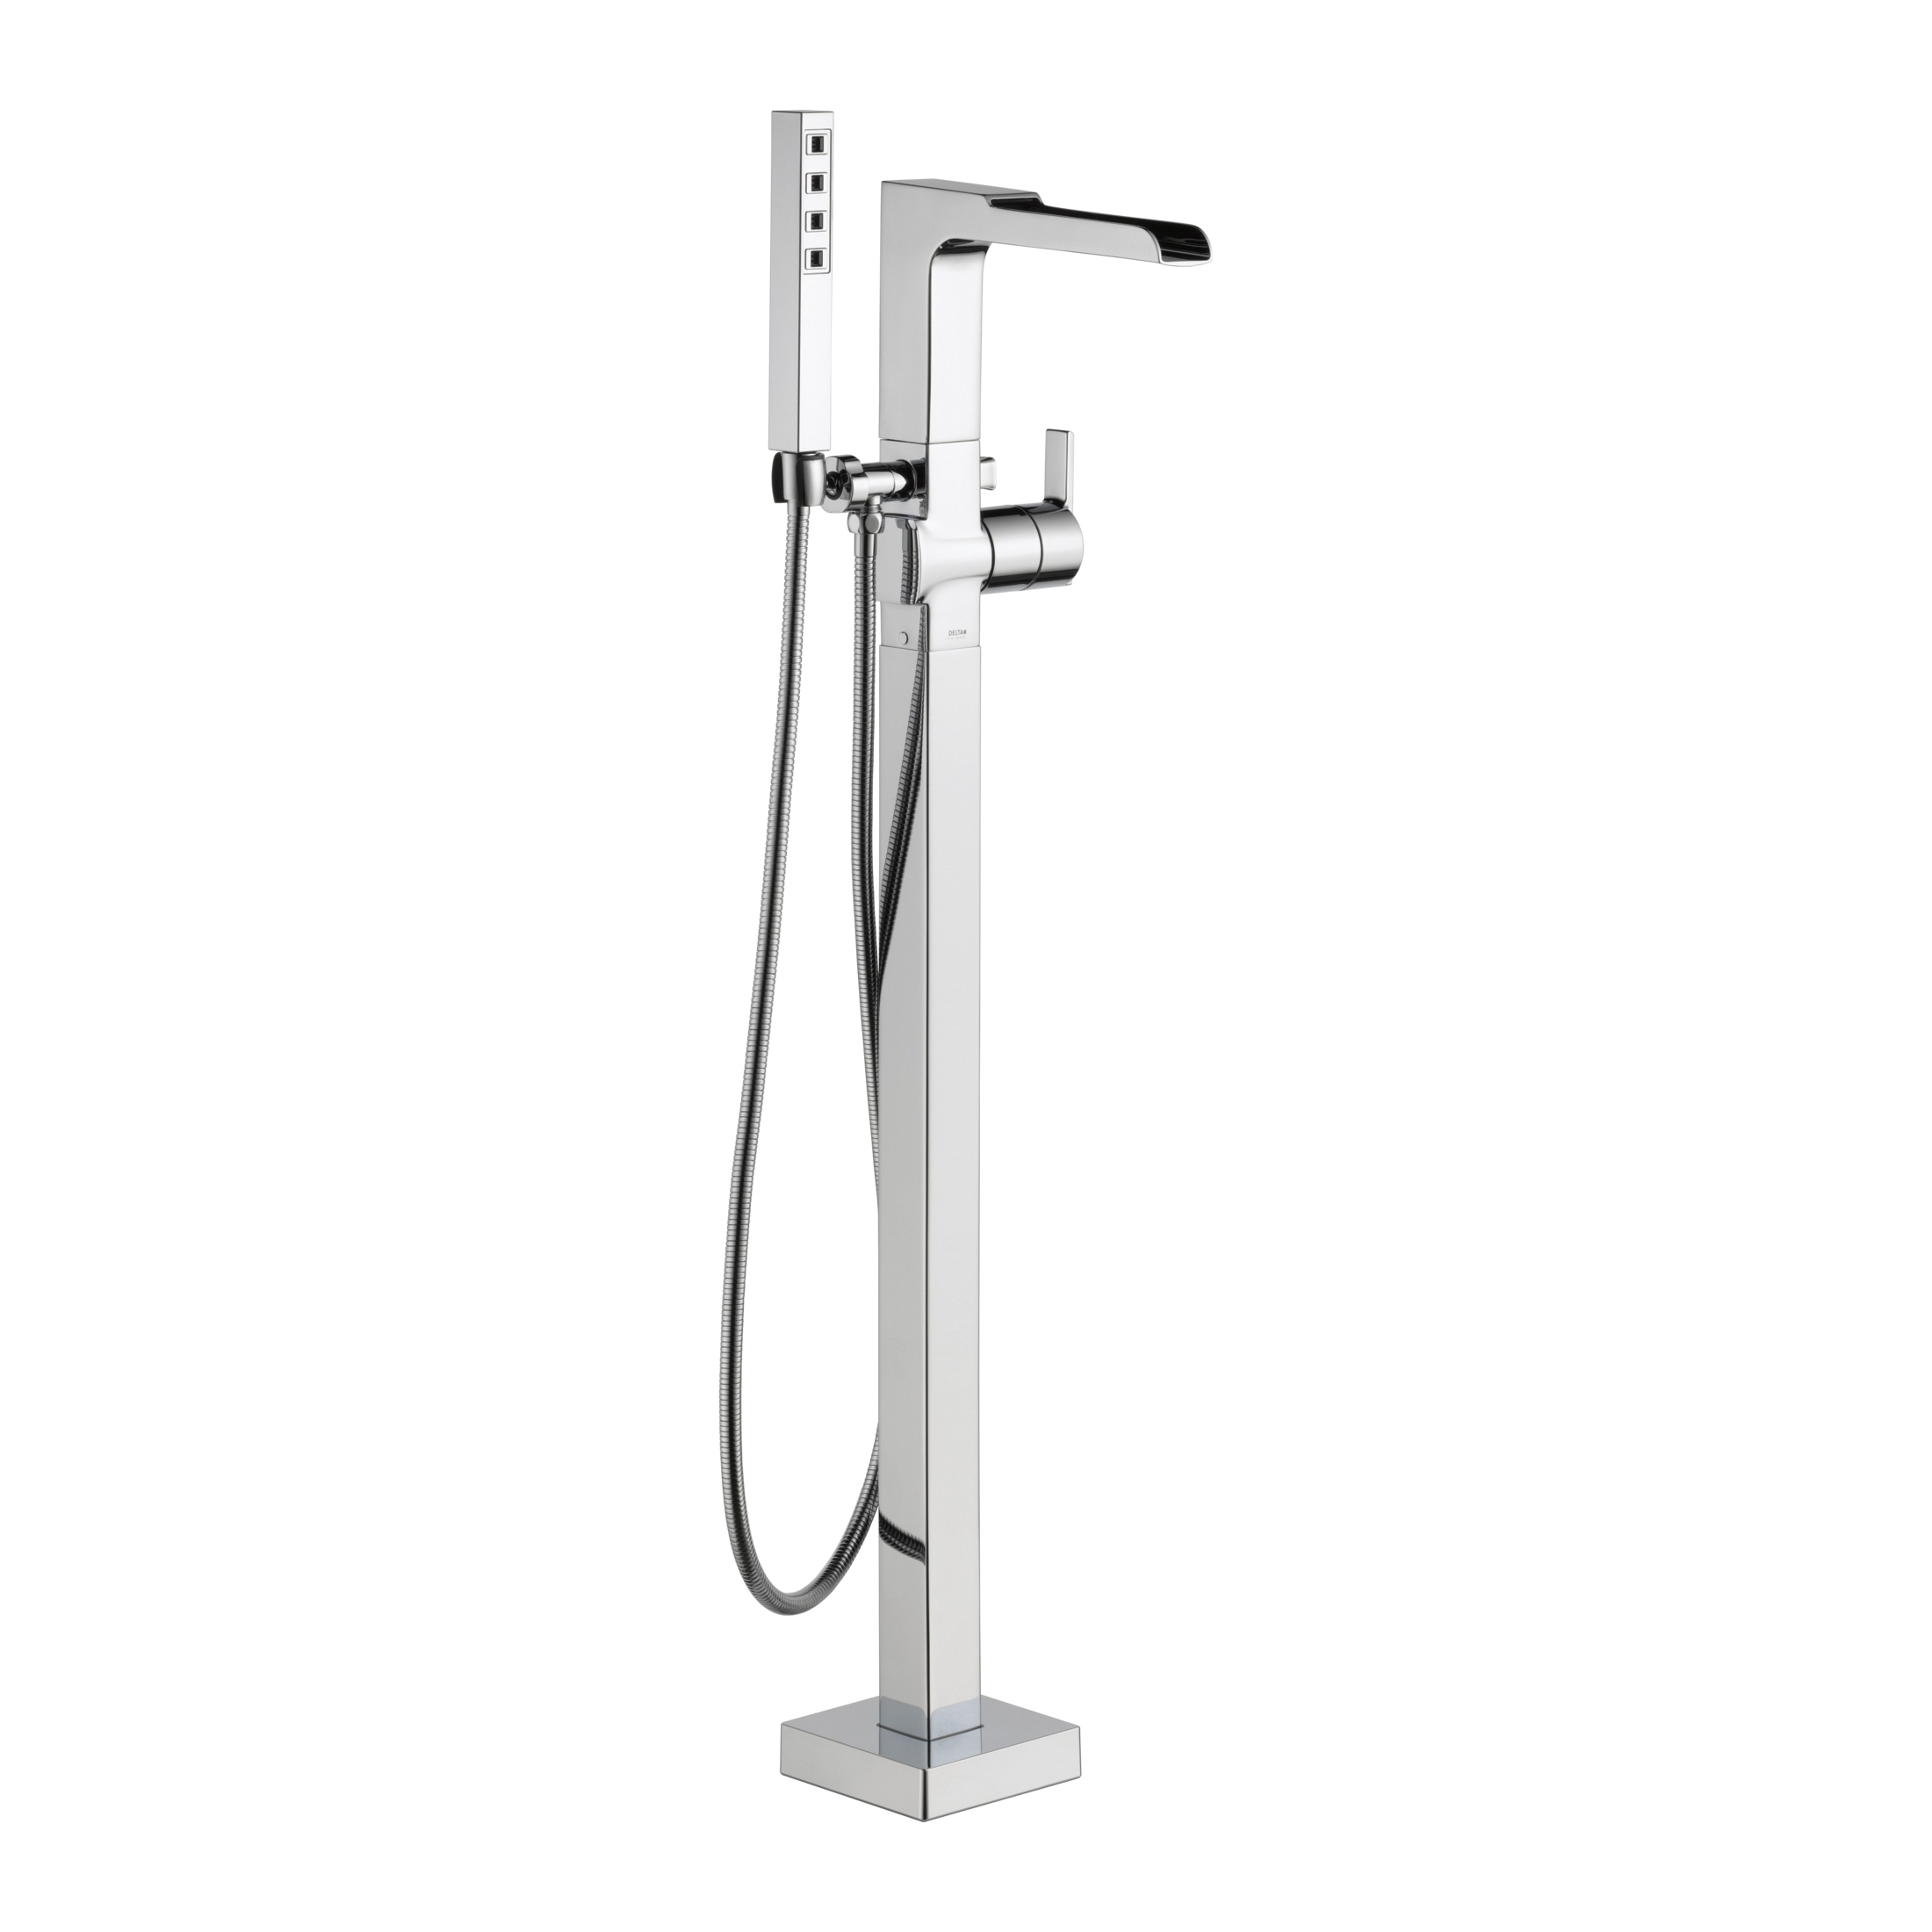 DELTA® T4768-FL Ara® Tub Filler, 2 gpm, Chrome Plated, 1 Handles, Hand Shower Yes/No: Yes, Domestic, Commercial